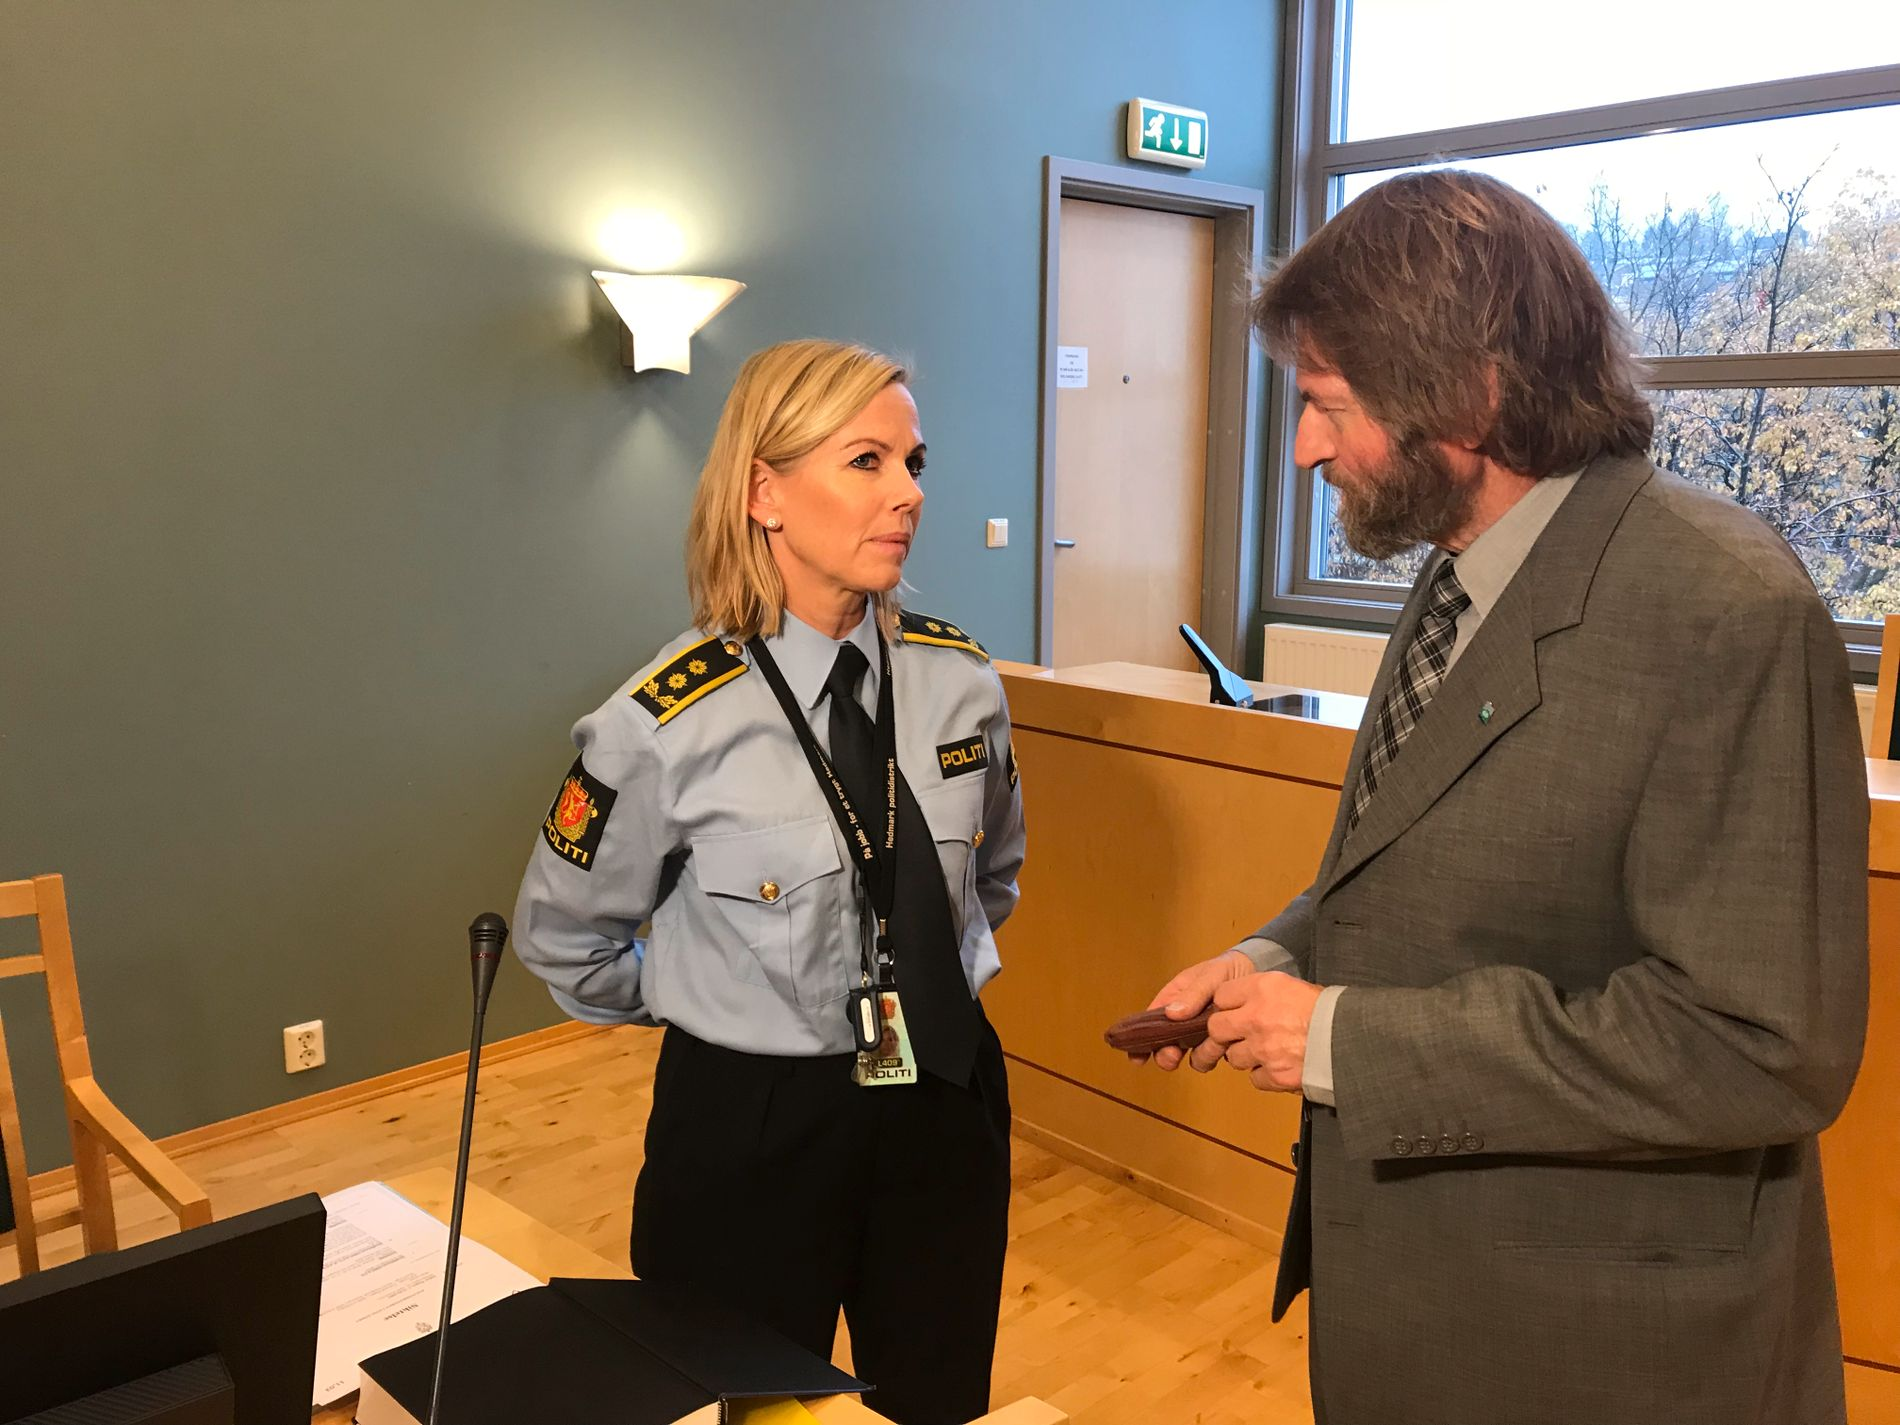 IN THE COURT: Police Chief Stine Grimstad and Defense Counsel Lorentz Stavrum before the jail term